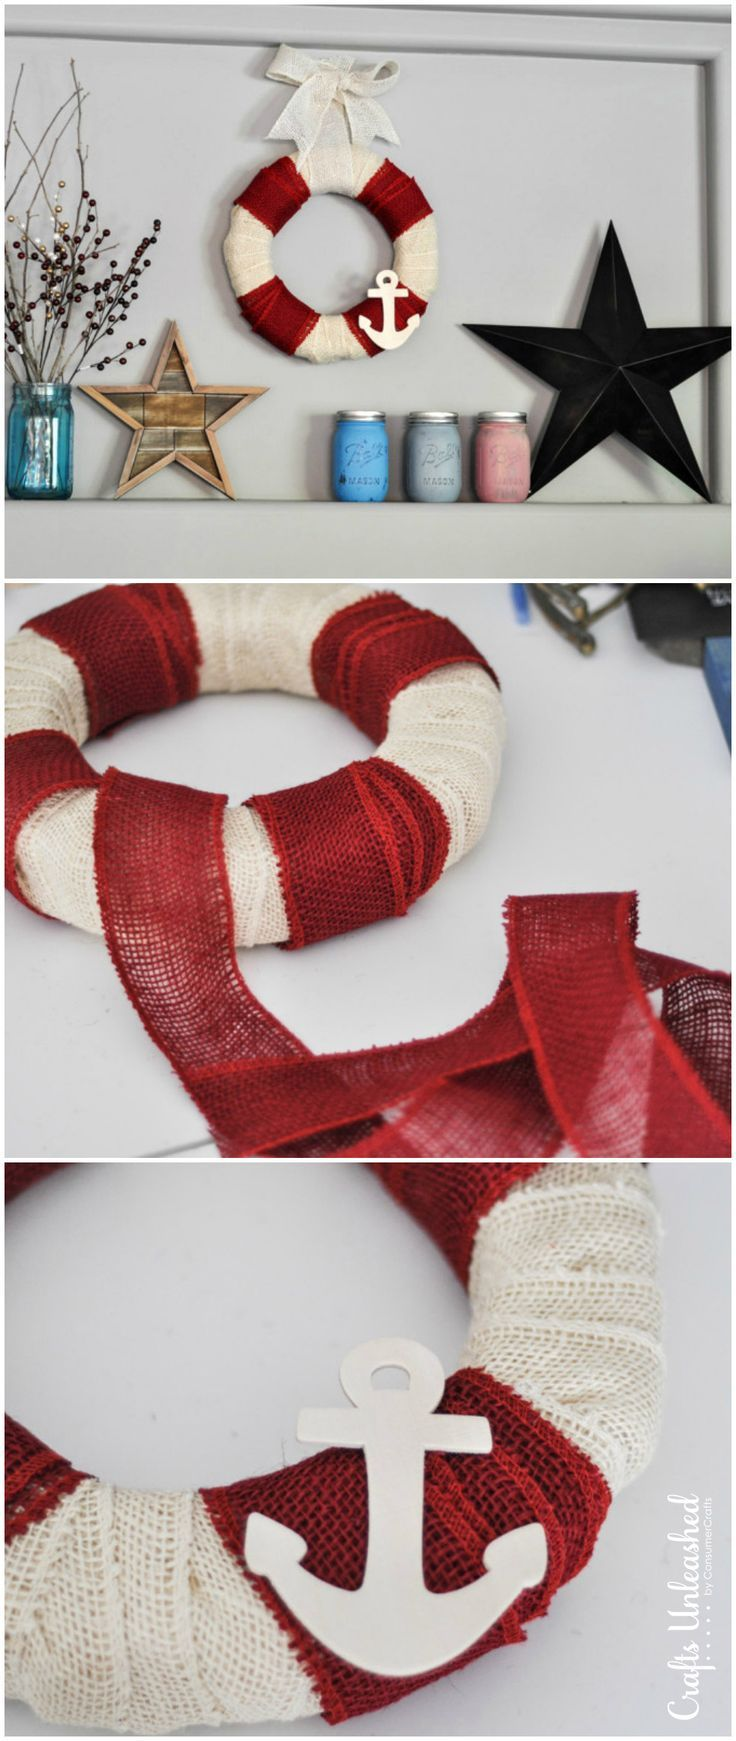 Nautical crafts to make - Diy Burlap Wreath Summer Nautical Crafts Unleashed